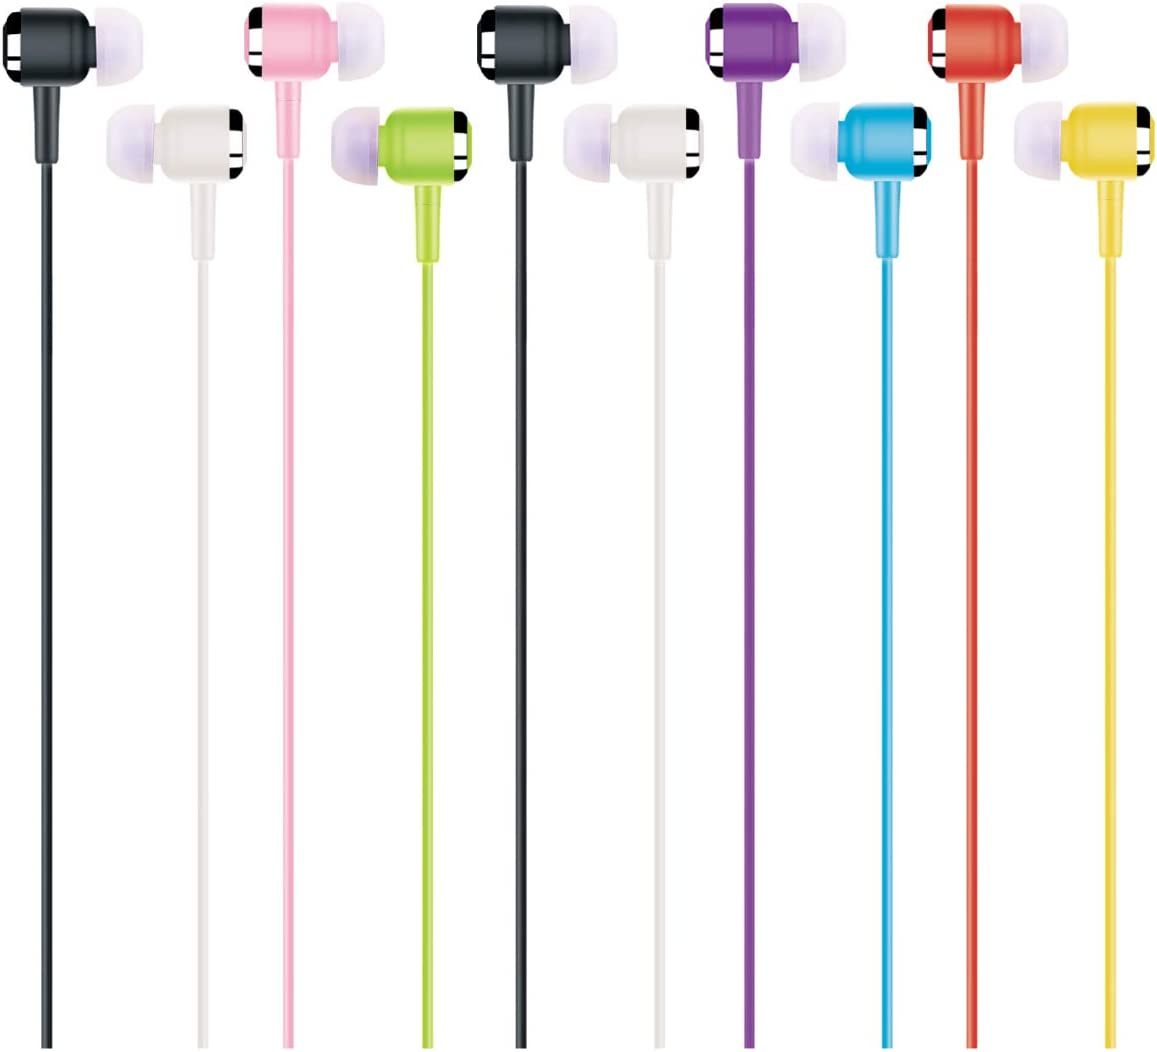 100 Pack Earbud Headphones in Bulk (G02), Multi Colors Corded Earphones Wholesale Accessory for Classroom iPhone Cell Phone Laptop Computer Business Office School Library Lab